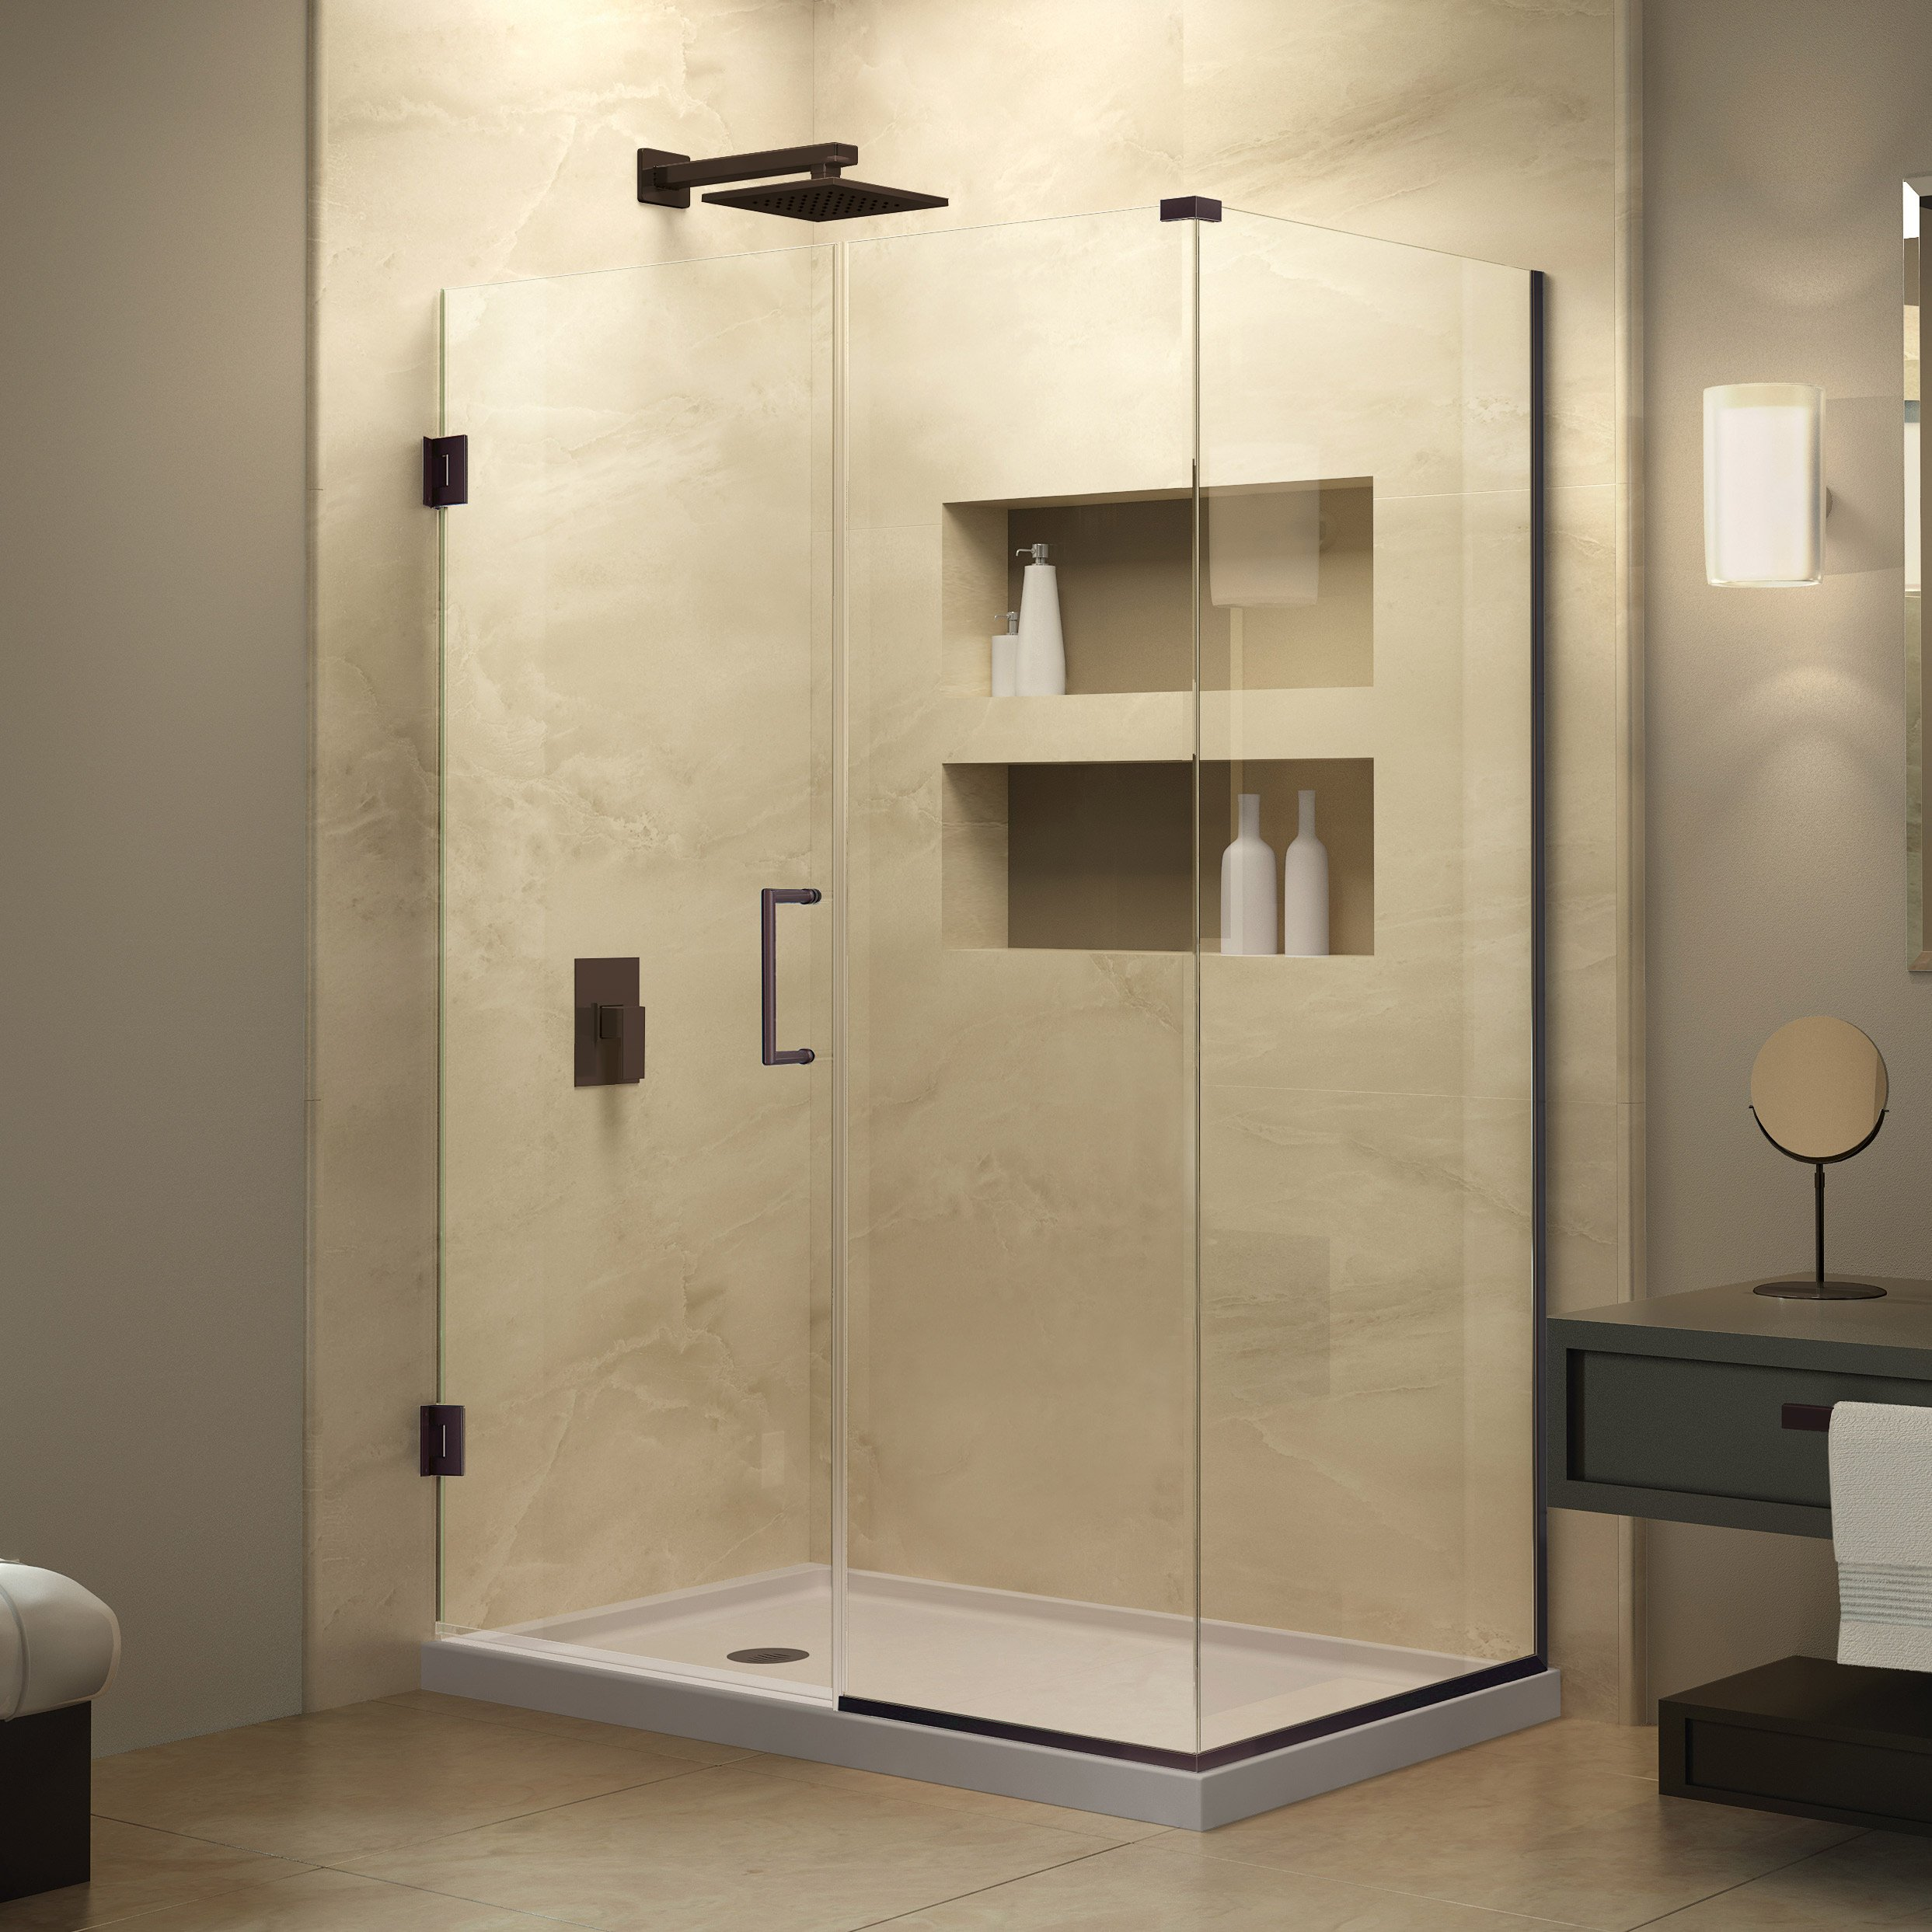 DreamLine Unidoor Plus 34 3/8 in. D x 35 in. W, Frameless Hinged Shower Enclosure, 3/8'' Glass, Oil Rubbed Bronze Finish